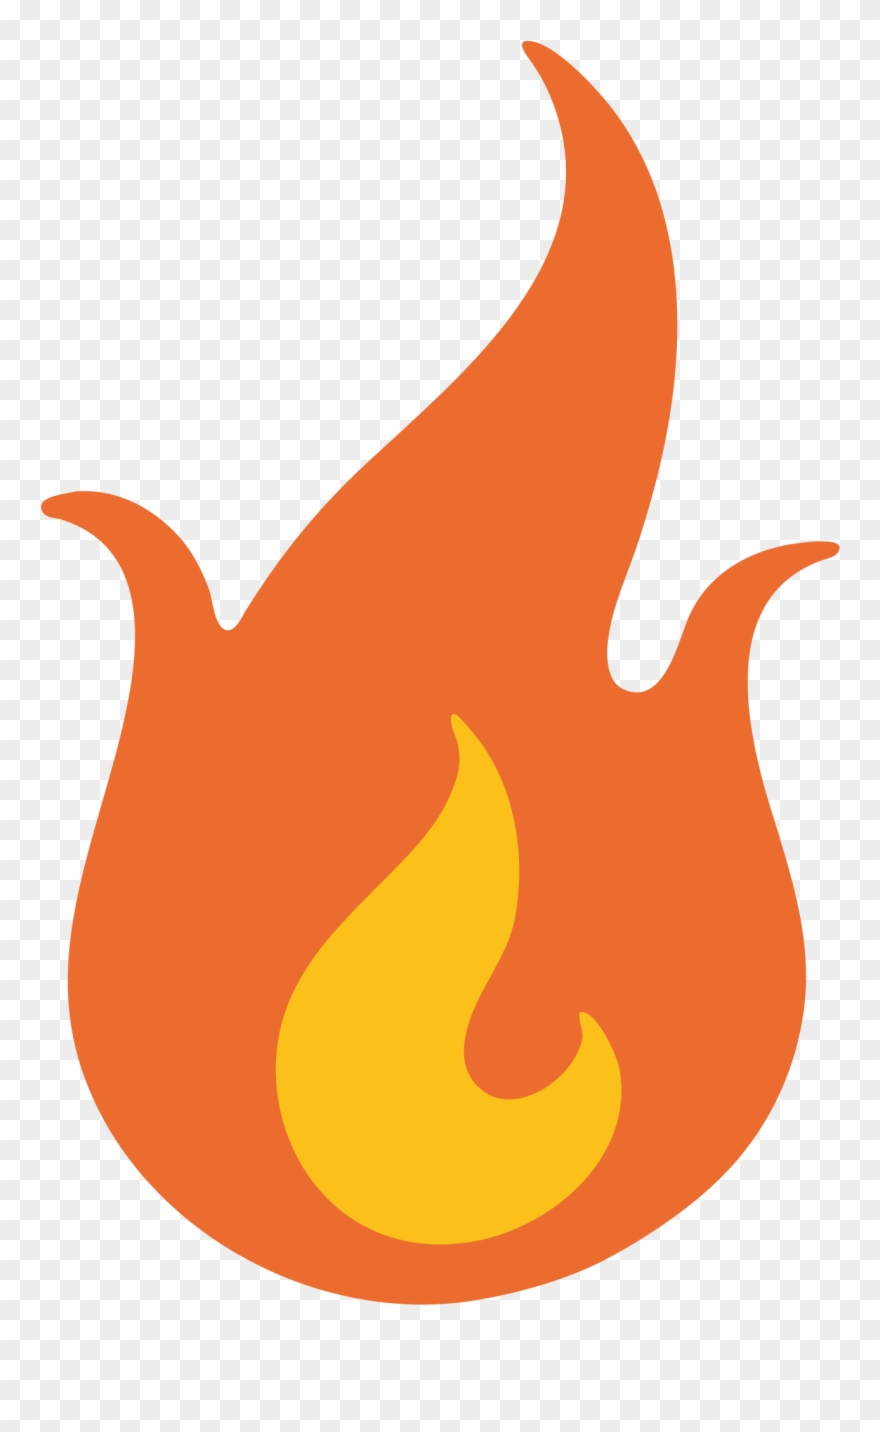 Fire emoji. Flame clipart transparent png